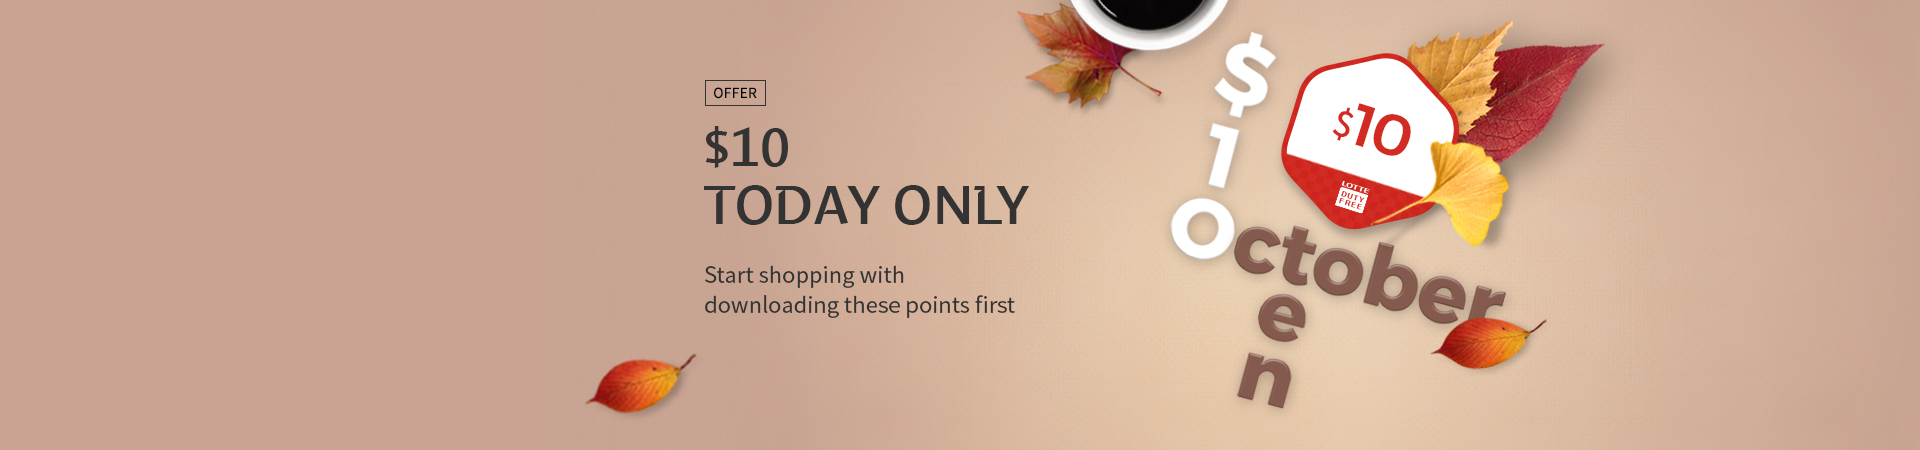 10/22 Today Only! $10 Reward points